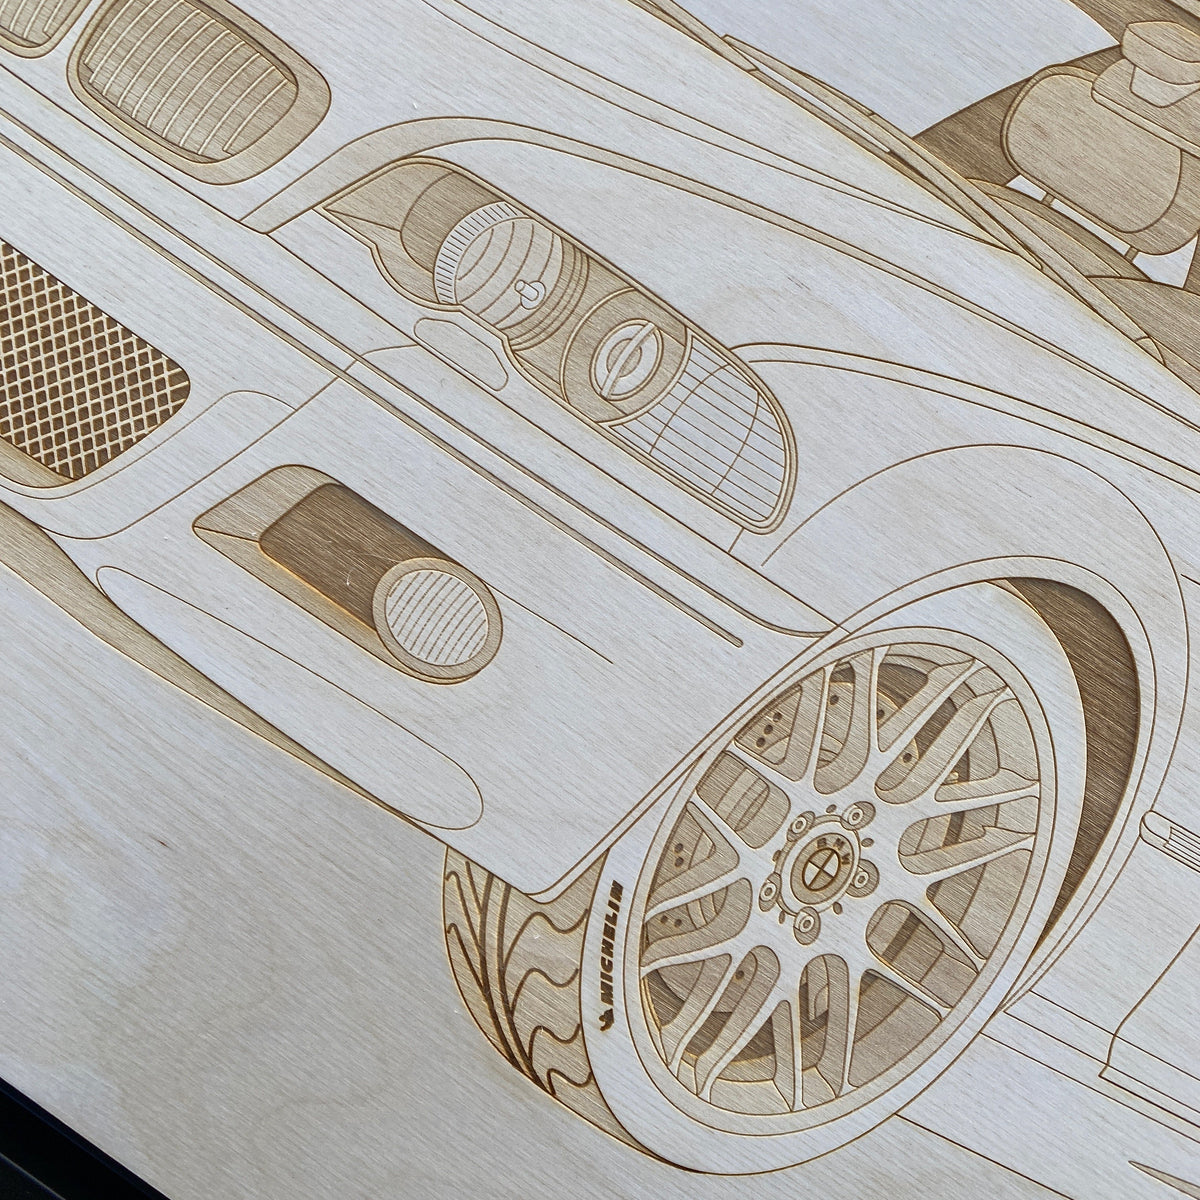 BMW M3 e46 Framed Wood Engraved Artwork